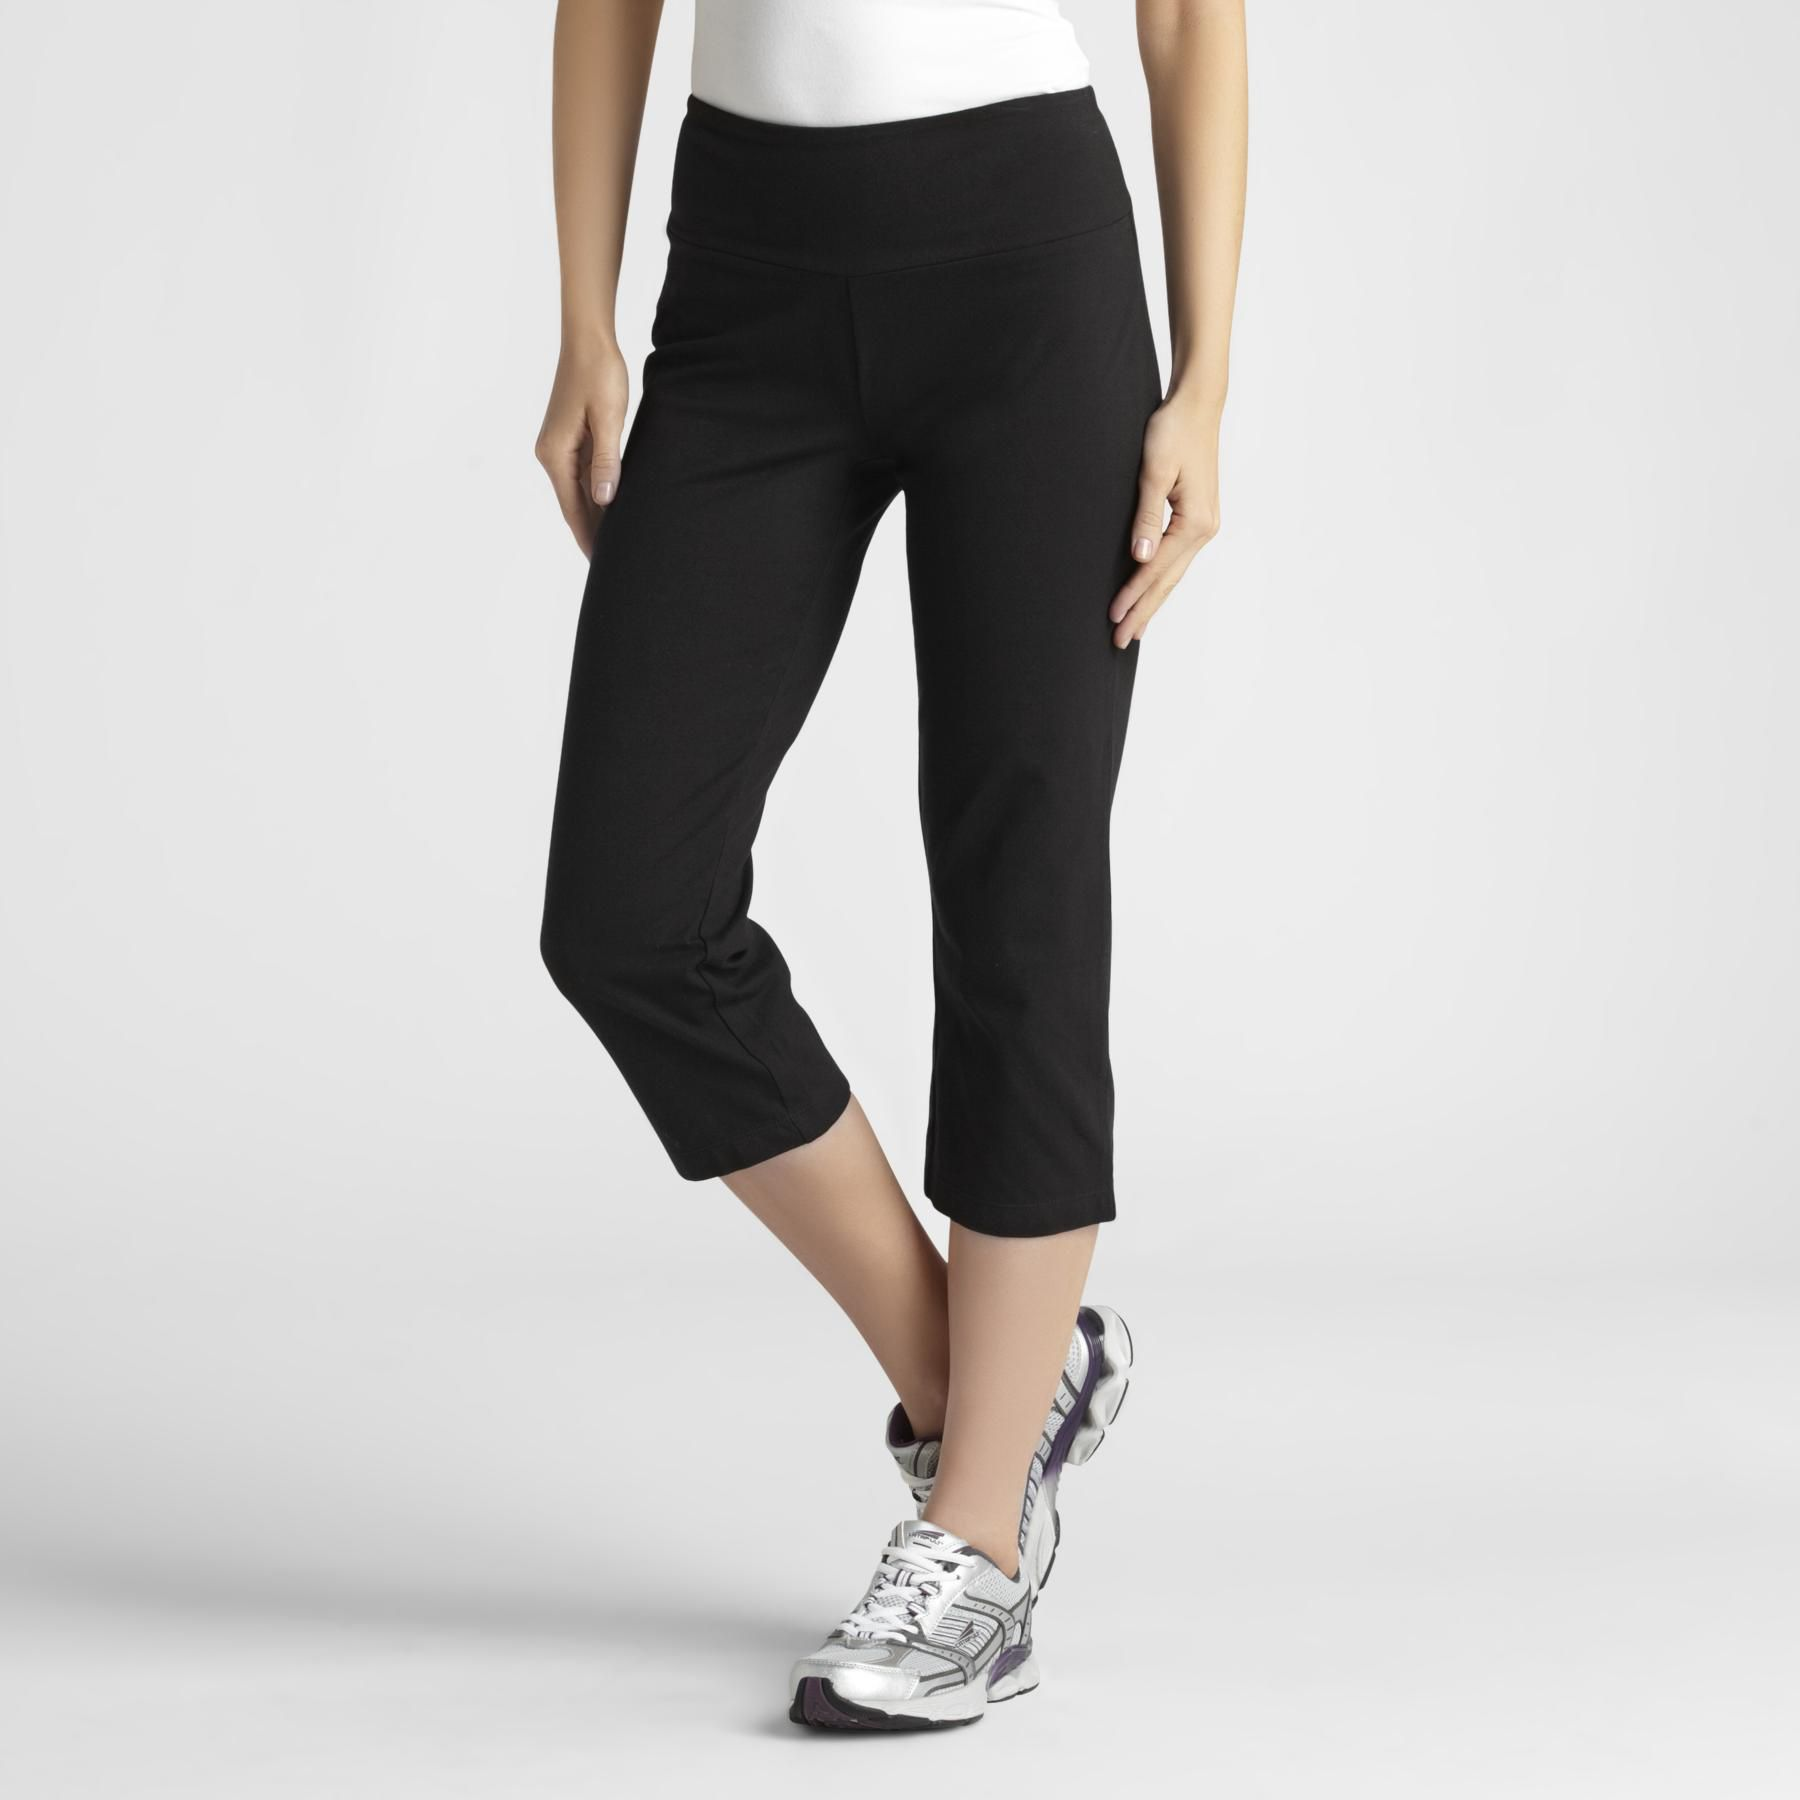 Athletech Women's Slimming Capri Pants at Kmart.com